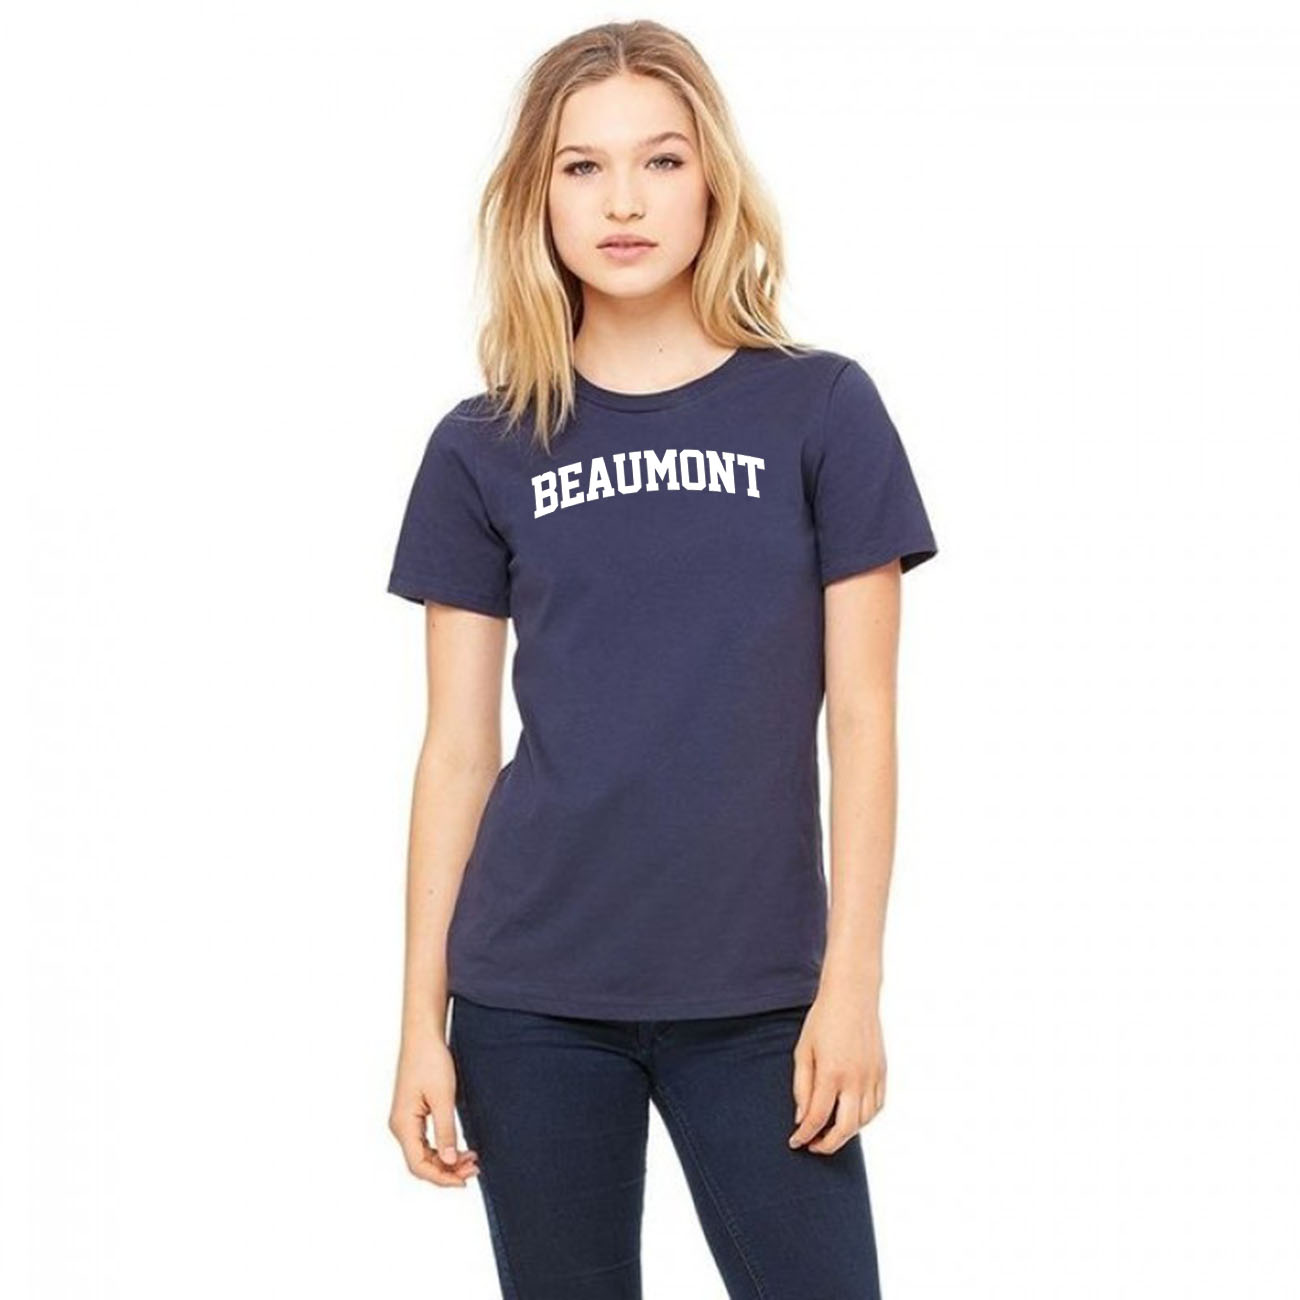 Beaumont Name Family Last First Retro Sport Arch Gift T-ShirtsBeaumont Name Family Last First Retro Sport Arch Gift T-Shirts